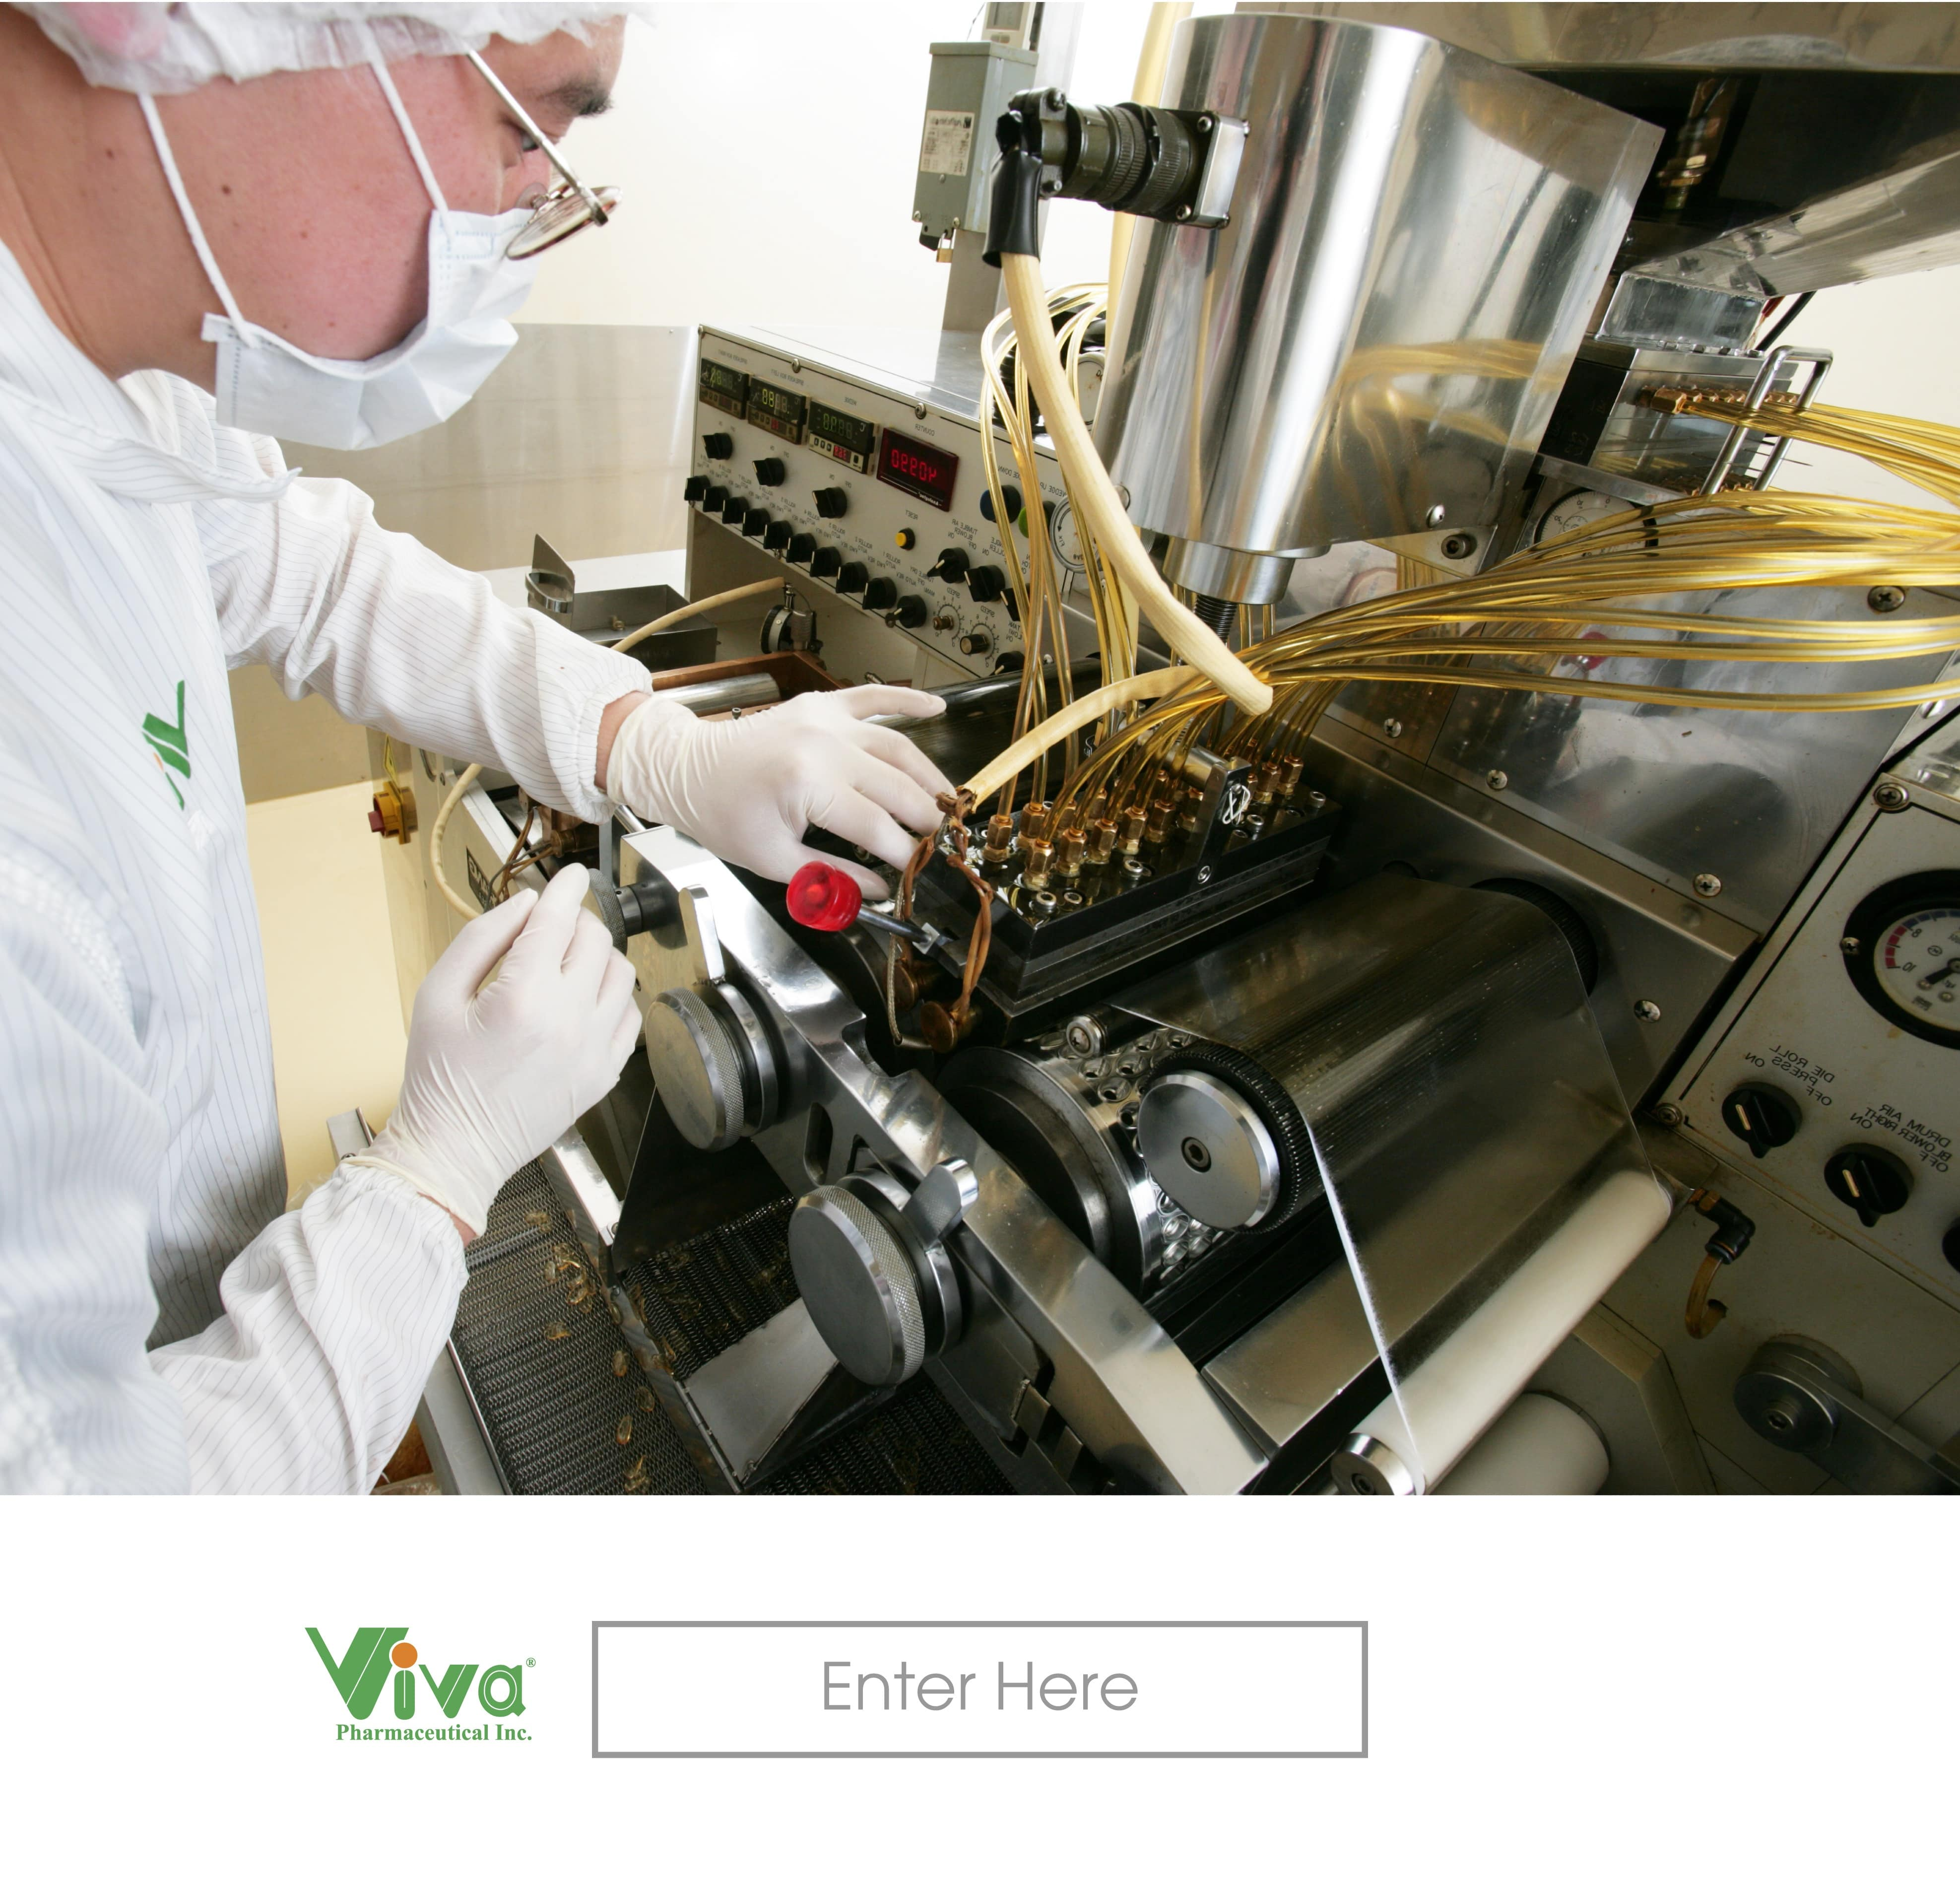 generoso pharmaceutical chemical inc essay Essays on generoso pharmaceuticals and chemical inc for students to reference for free use our essays to help you with your writing 1 - 60.